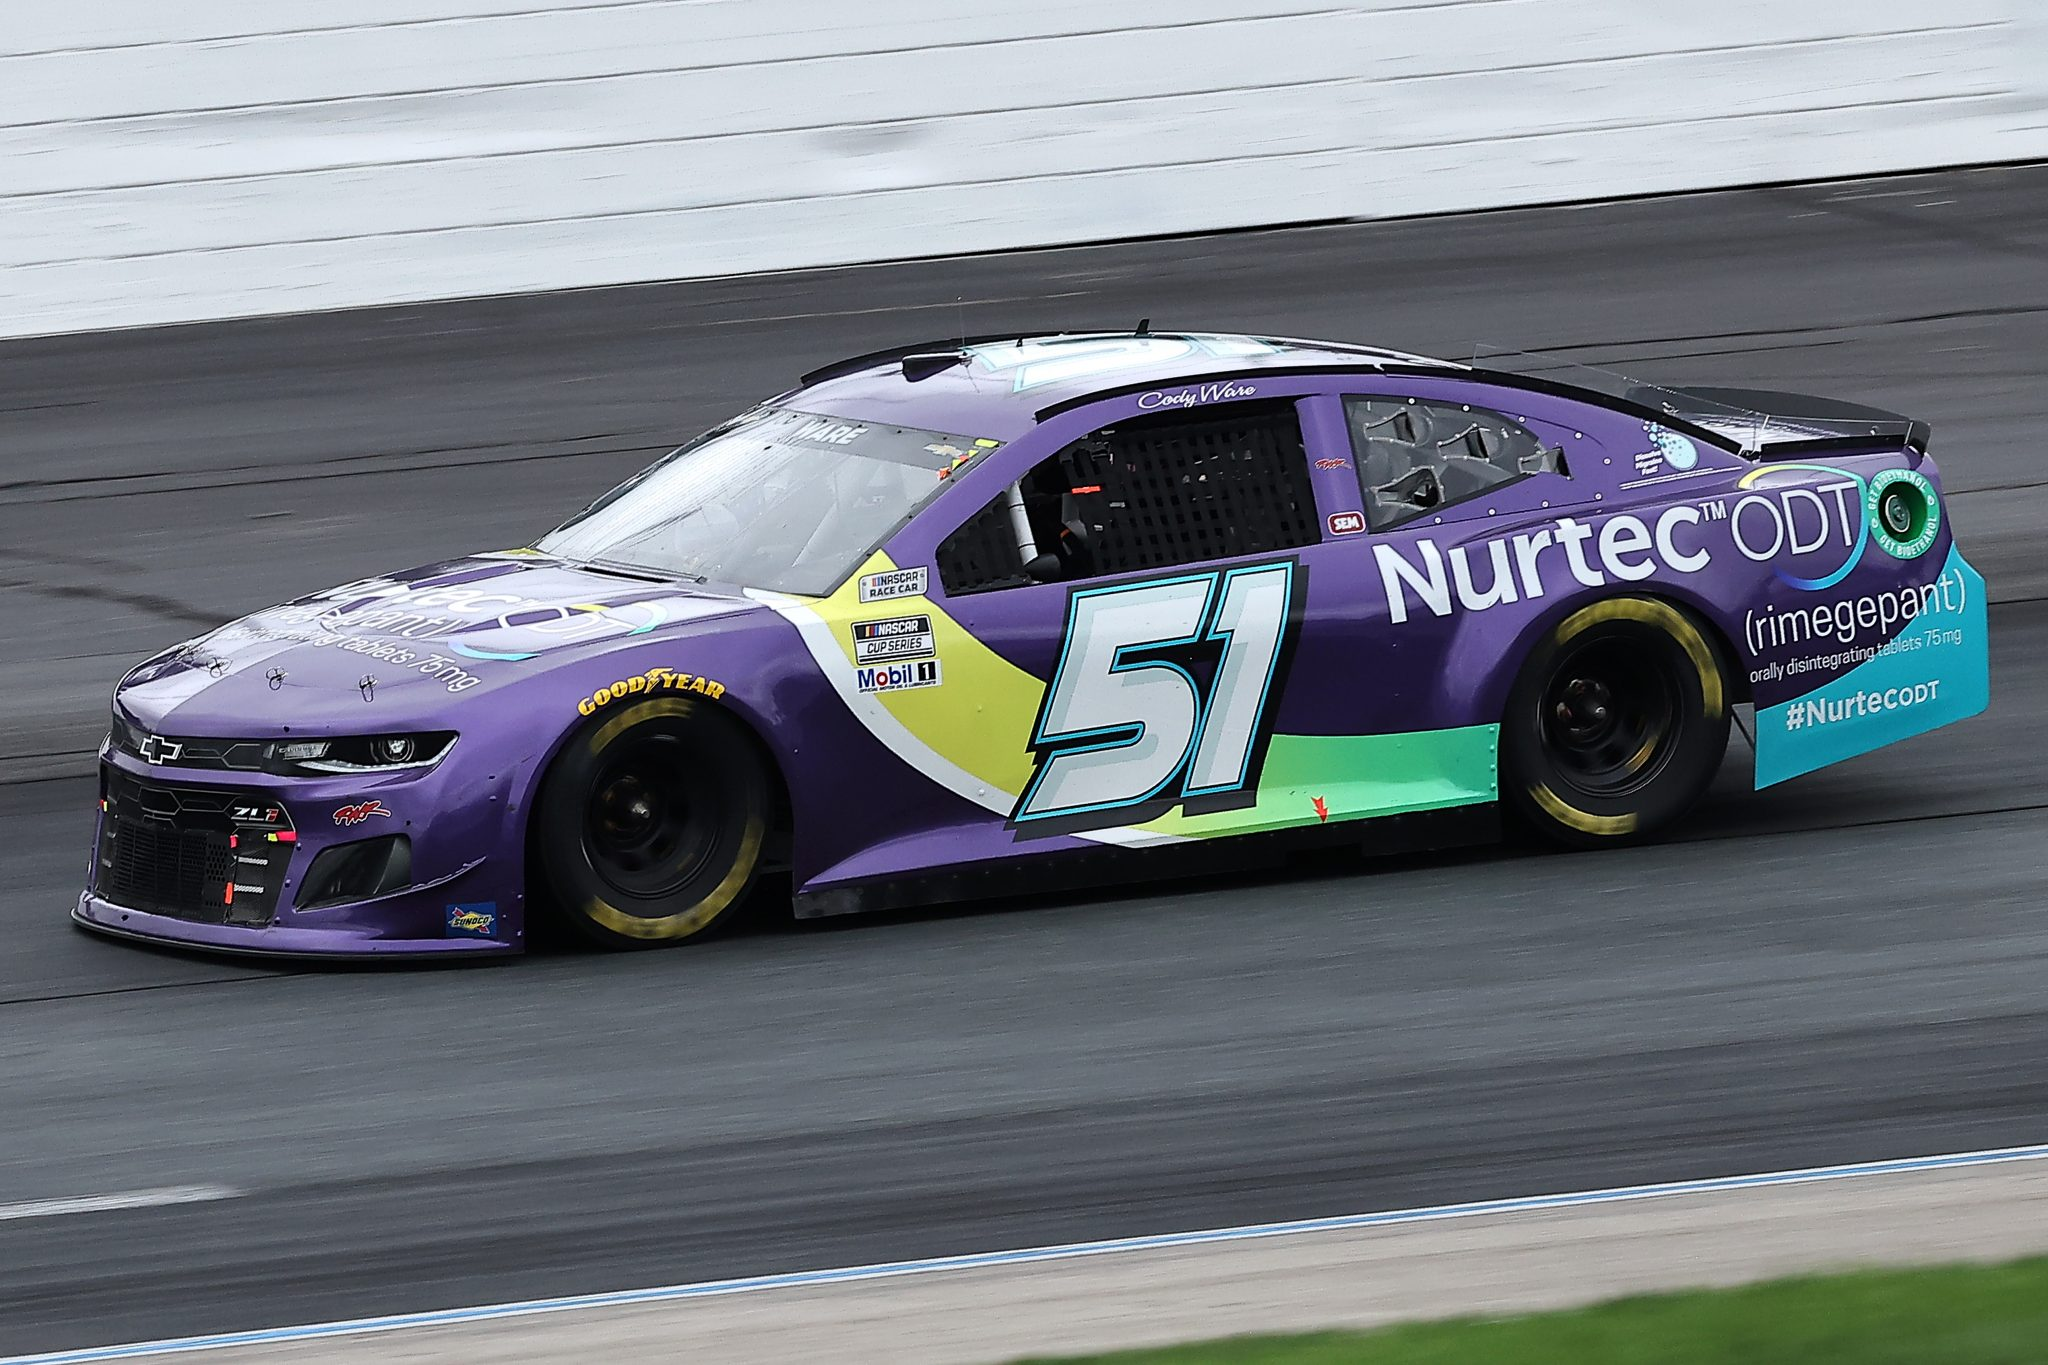 LOUDON, NEW HAMPSHIRE - JULY 18: Cody Ware, driver of the #51 Nurtec ODT Chevrolet, drives during the NASCAR Cup Series Foxwoods Resort Casino 301 at New Hampshire Motor Speedway on July 18, 2021 in Loudon, New Hampshire. (Photo by James Gilbert/Getty Images) | Getty Images